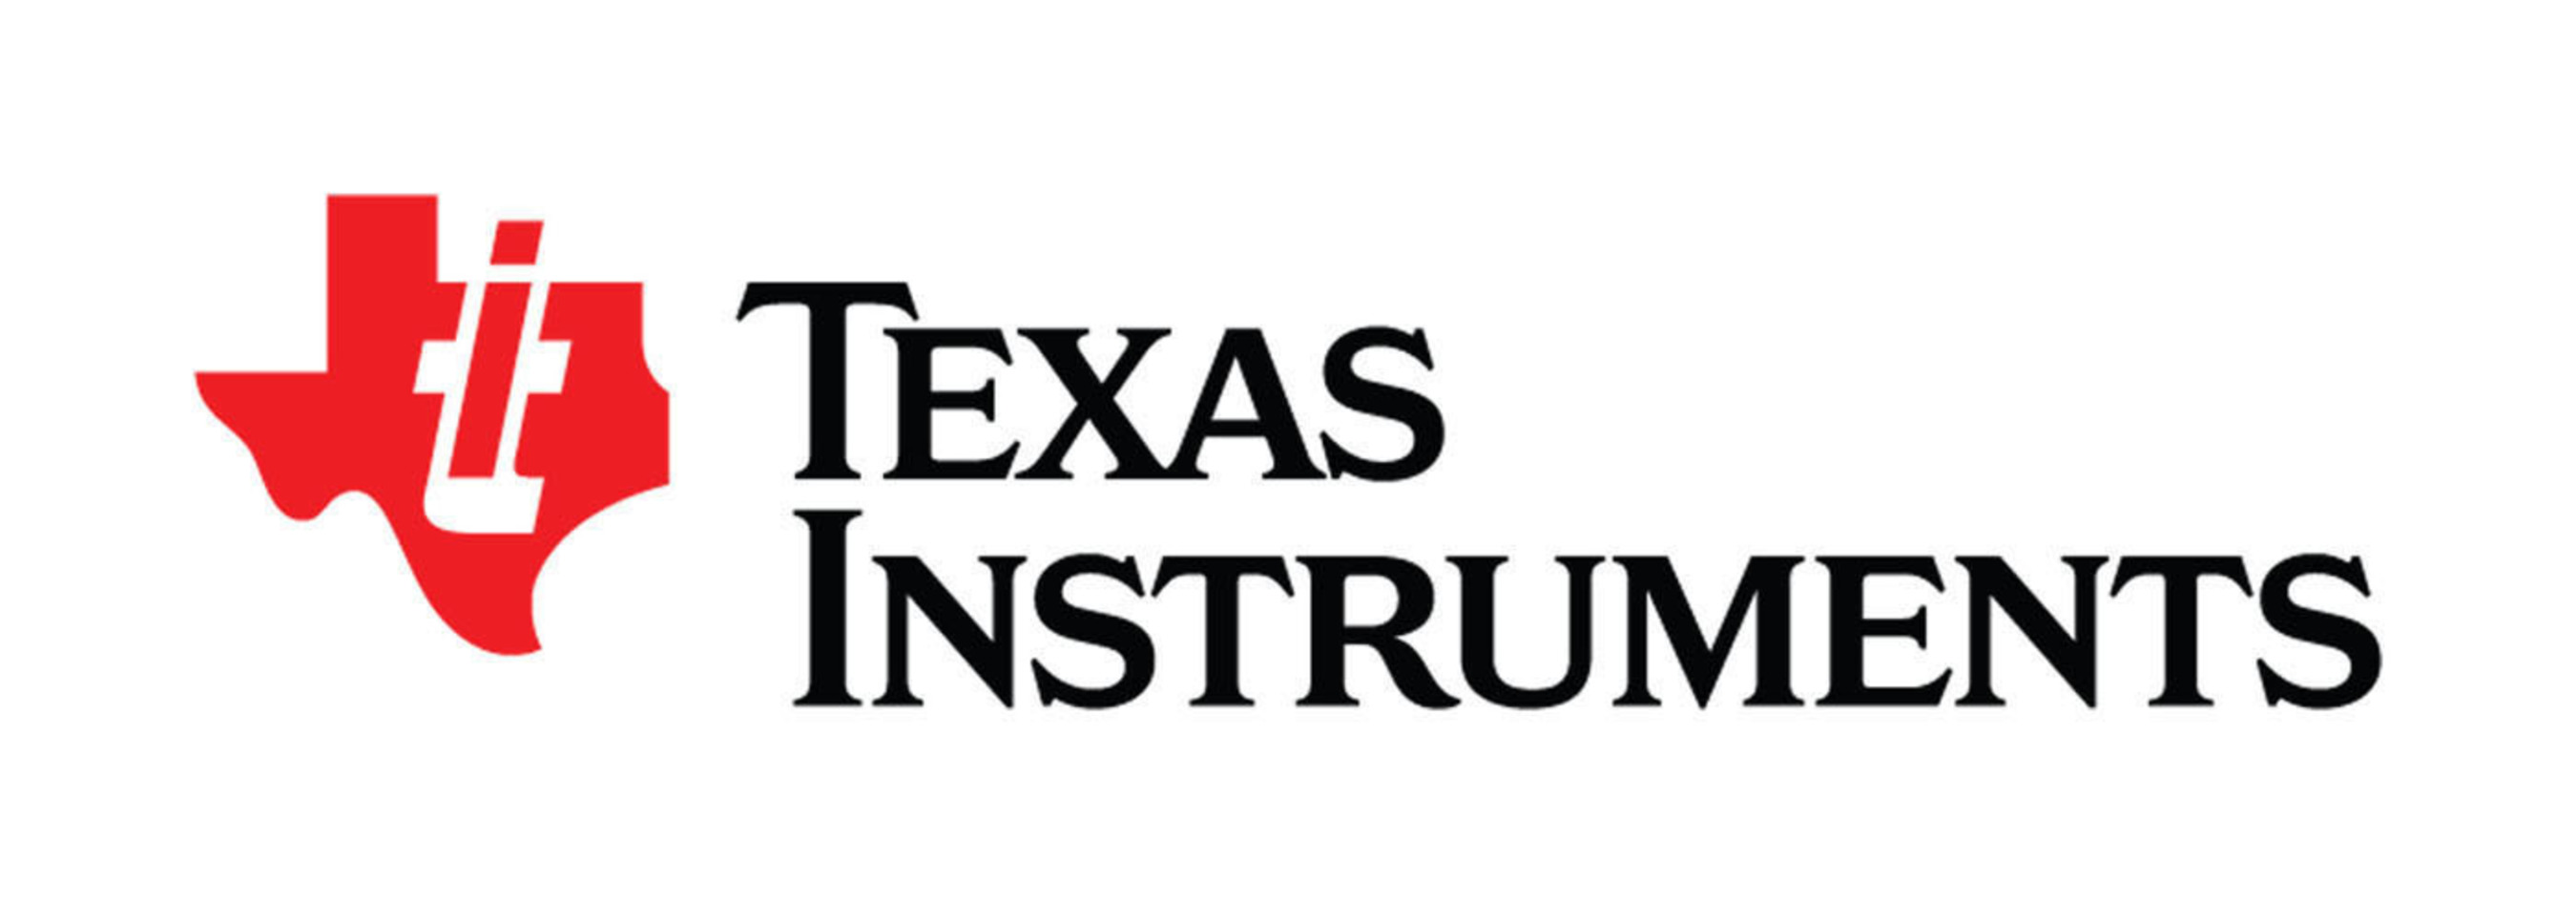 Texas Instruments announces DesignDRIVE, a new evaluation platform to explore numerous industrial drive subsystems and motor control topologies